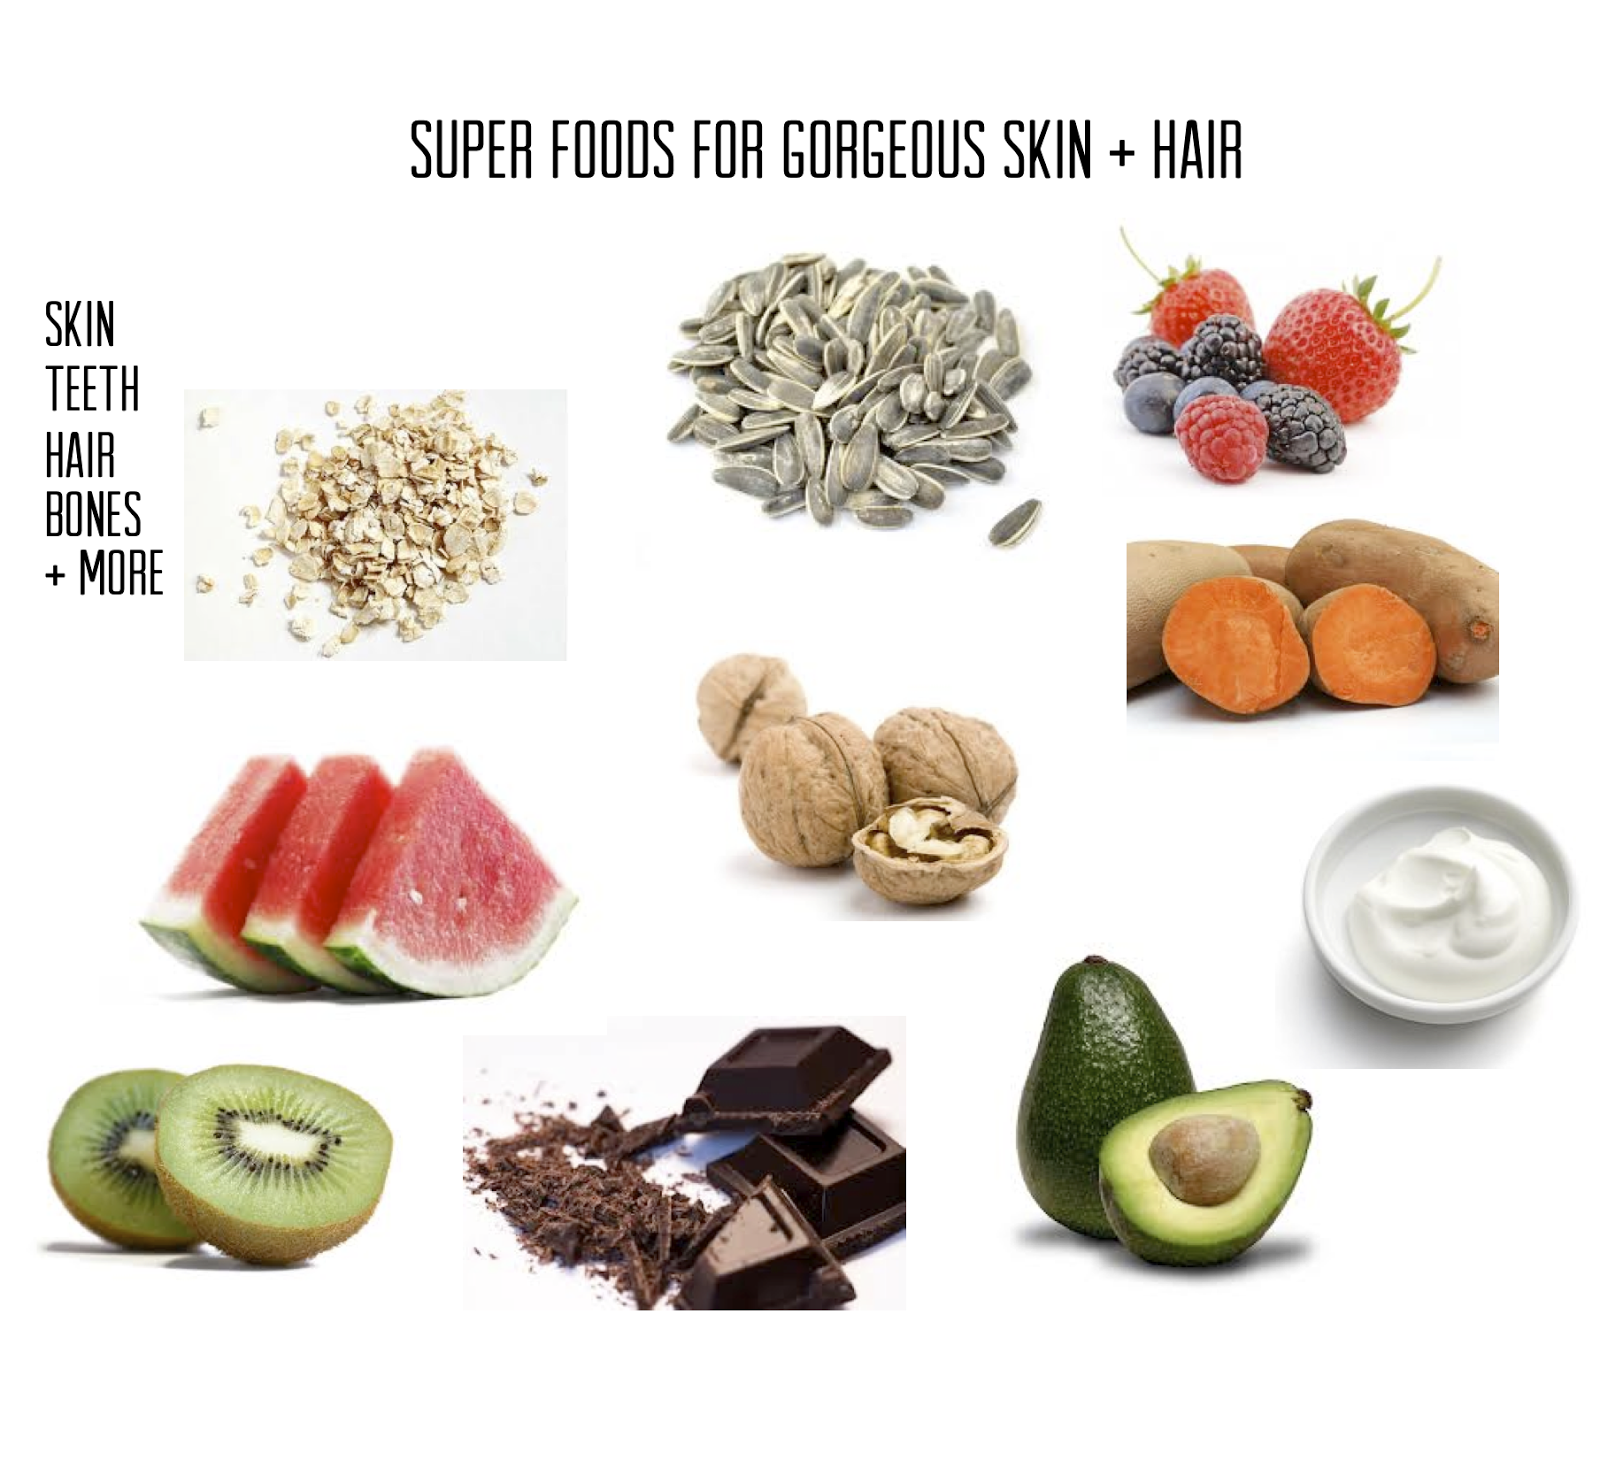 super, foods, for, gorgeous, skin, hair, avocado, melon, berry, sedds, sweet potato, healthy, strong